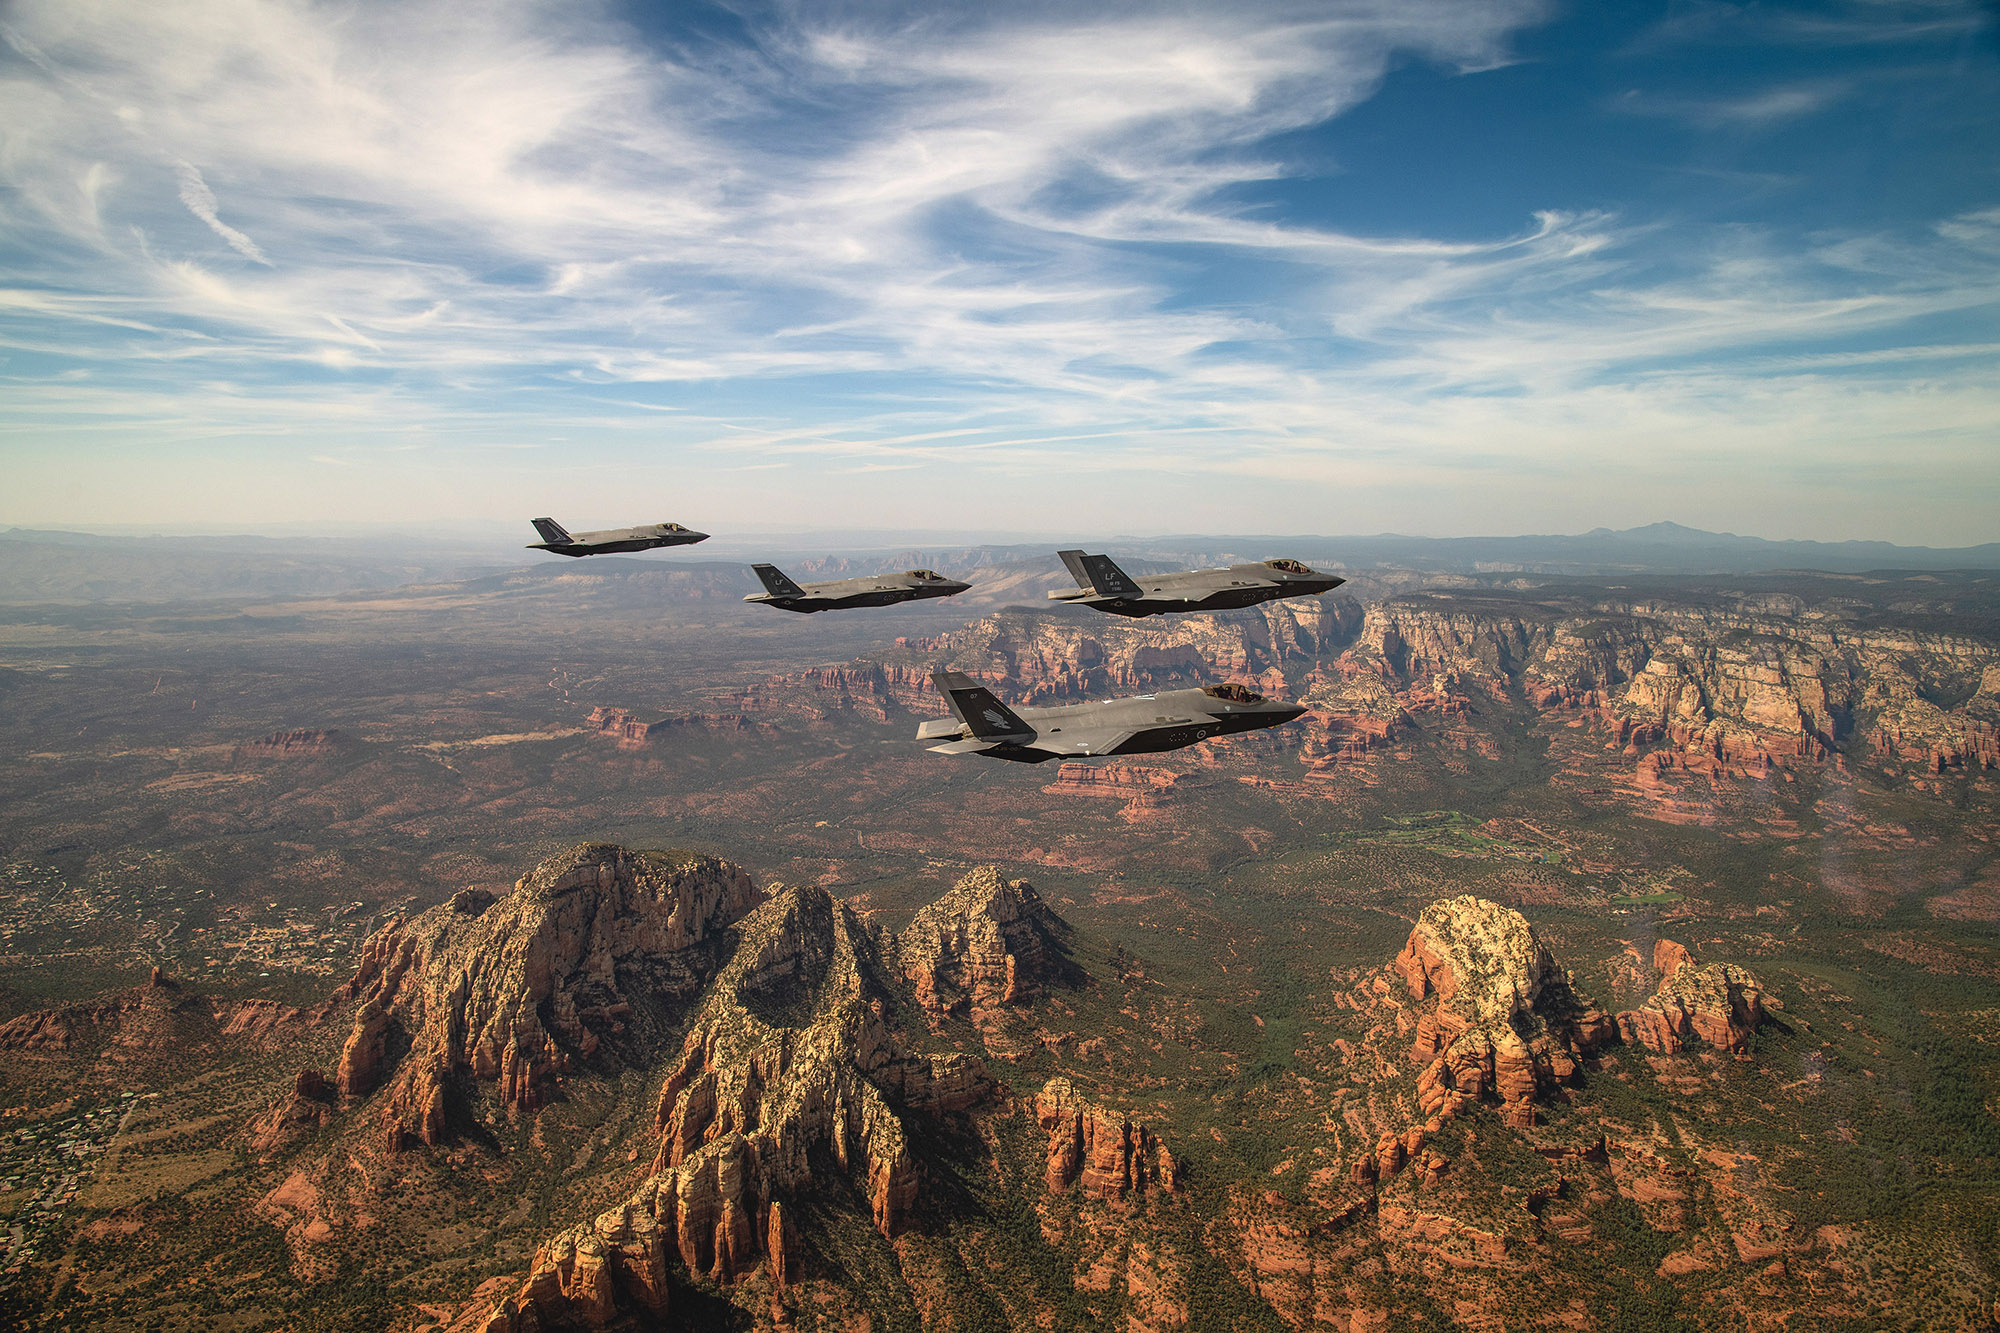 Two U.S. Air Force and two Royal Australian Air Force F-35A Lightning II's fly in formation during a commemoration flight Oct. 8, 2020, over Sedona, Ariz. The flight celebrated the partnership between the RAAF and U.S. Air Force in their joint efforts in training the world's most capable fighter pilots at Luke AFB. (Staff Sgt. Alexander Cook/Air Force)